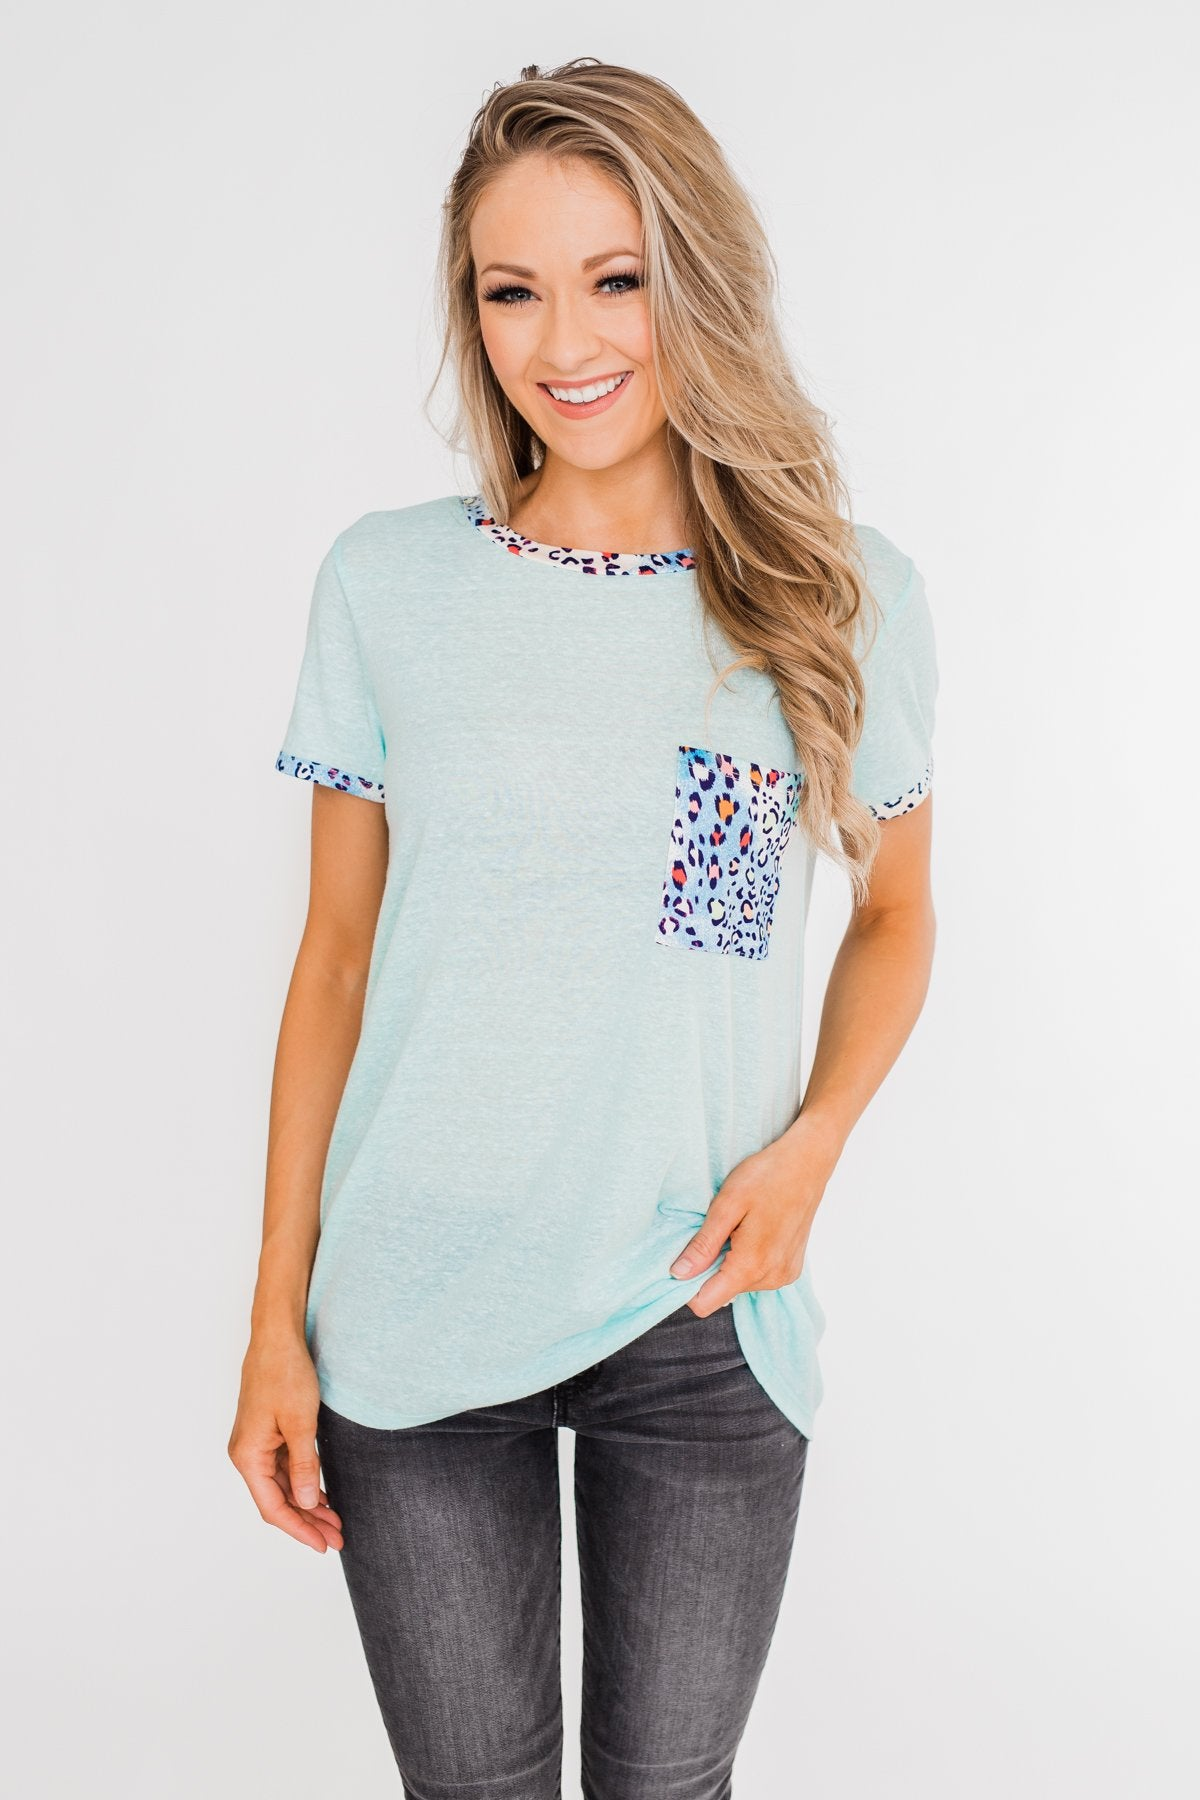 All Of A Sudden Leopard Pocket Top- Light Blue